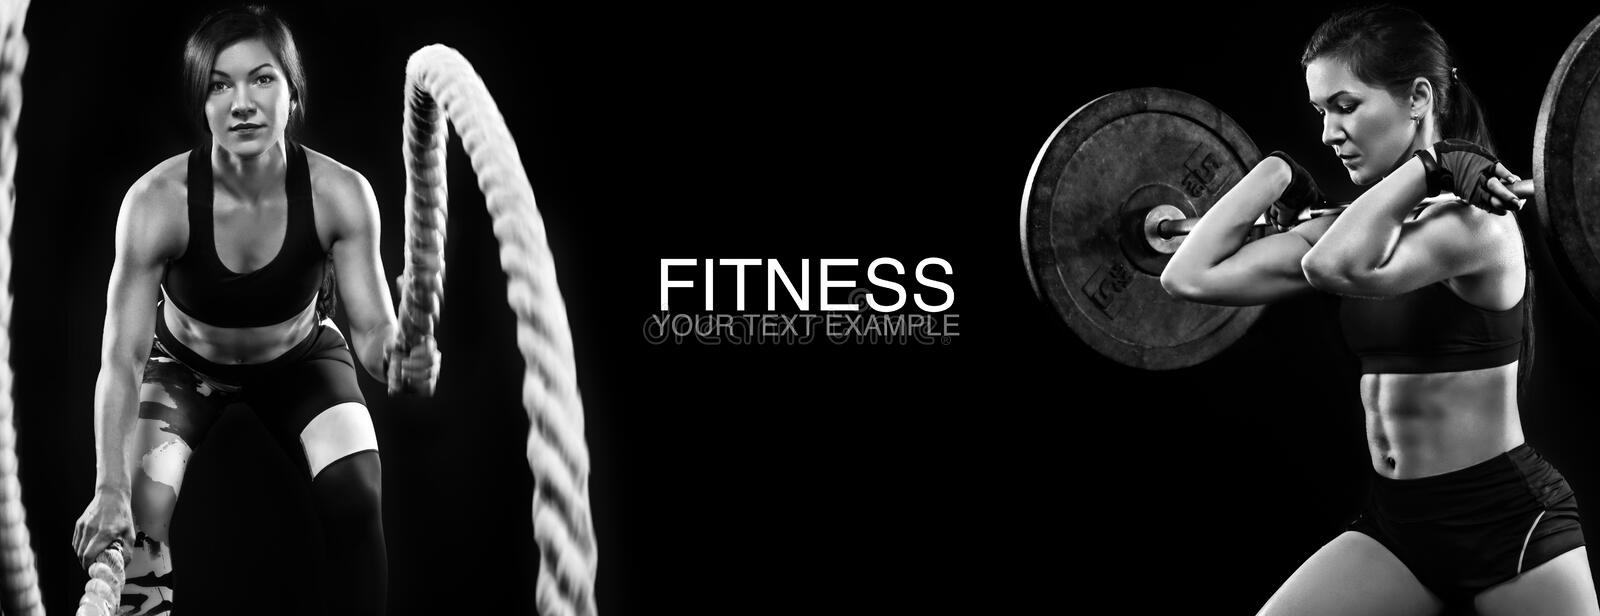 Sporty and fit women with dumbbell and battle rope exercising at black background to stay fit. Workout and fitness royalty free stock photography